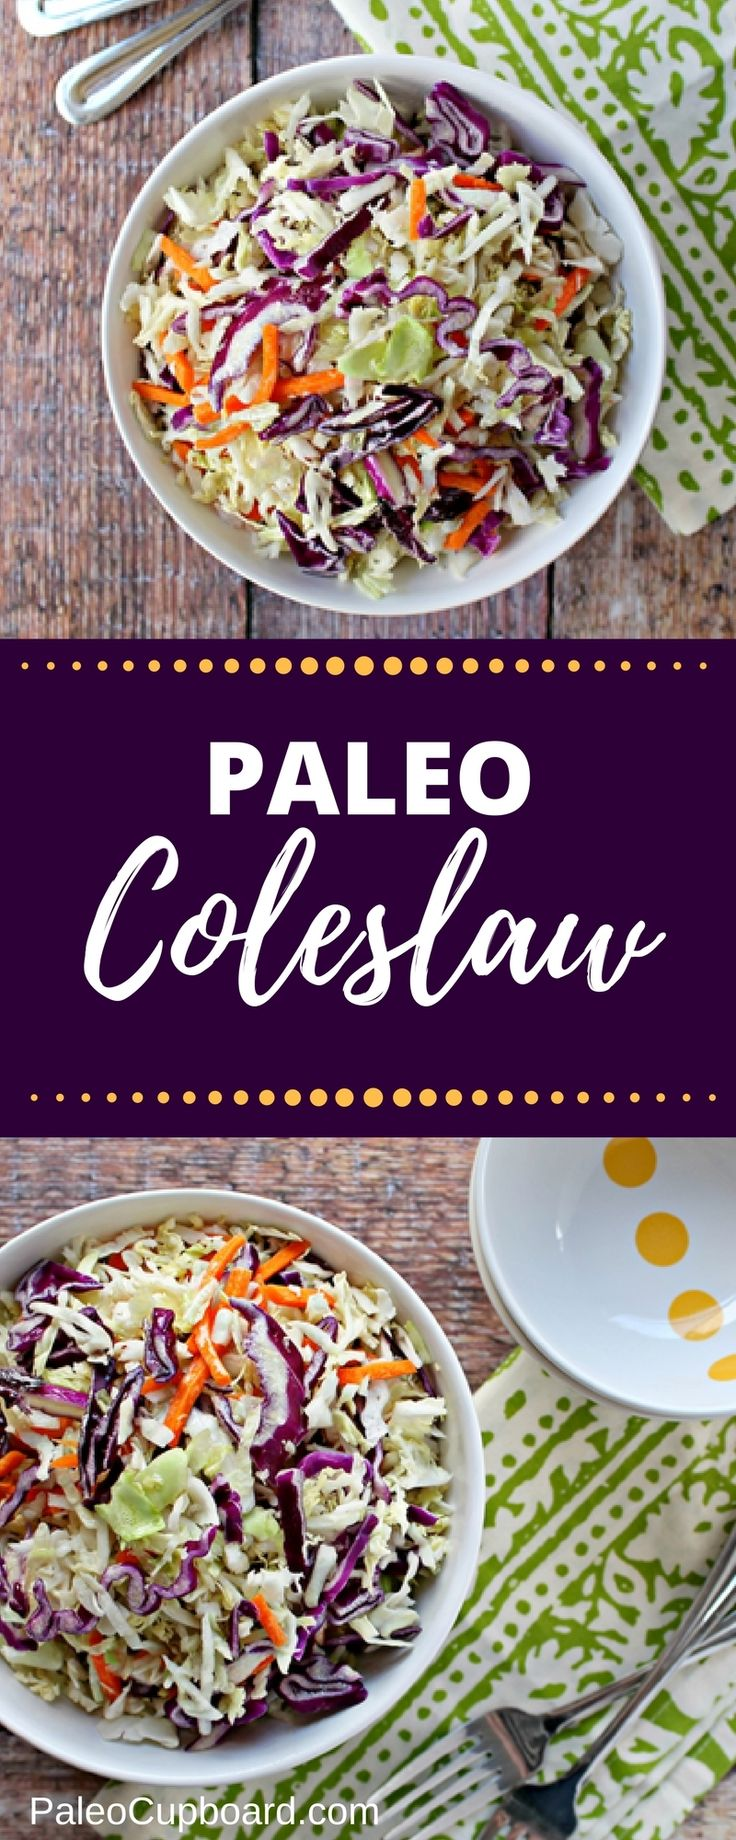 Paleo Coleslaw - Perfect side dish for any picnic or party! - PaleoCupboard.com